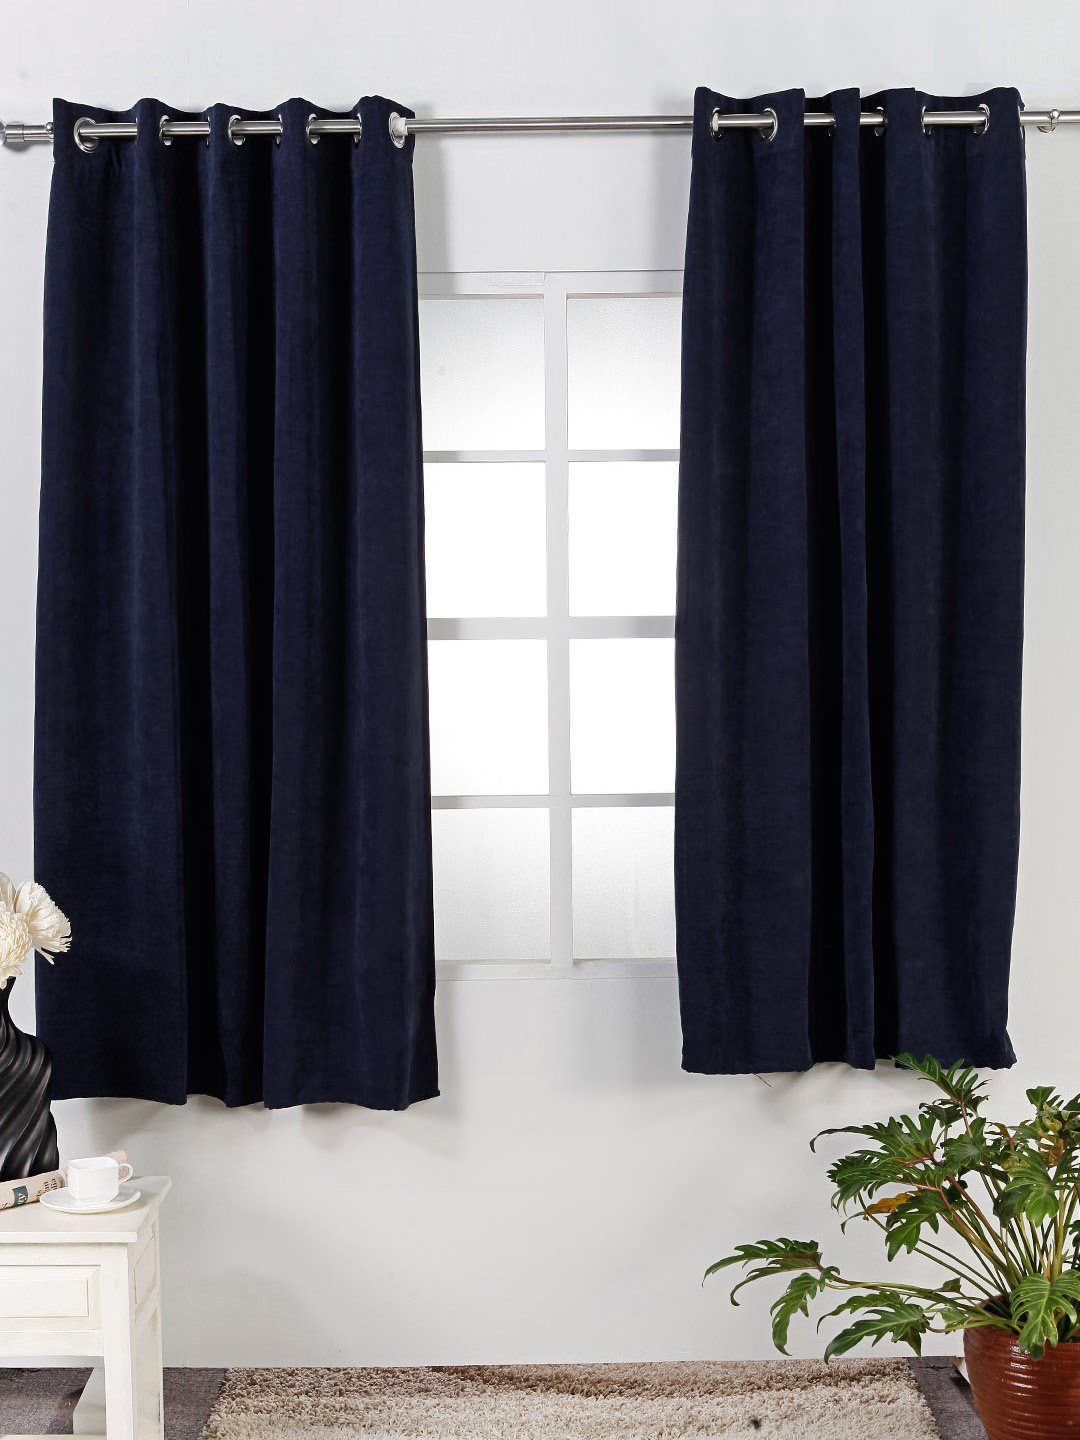 workspace curtain navy vintage the rug velvet new curtains brittanymakes a shop